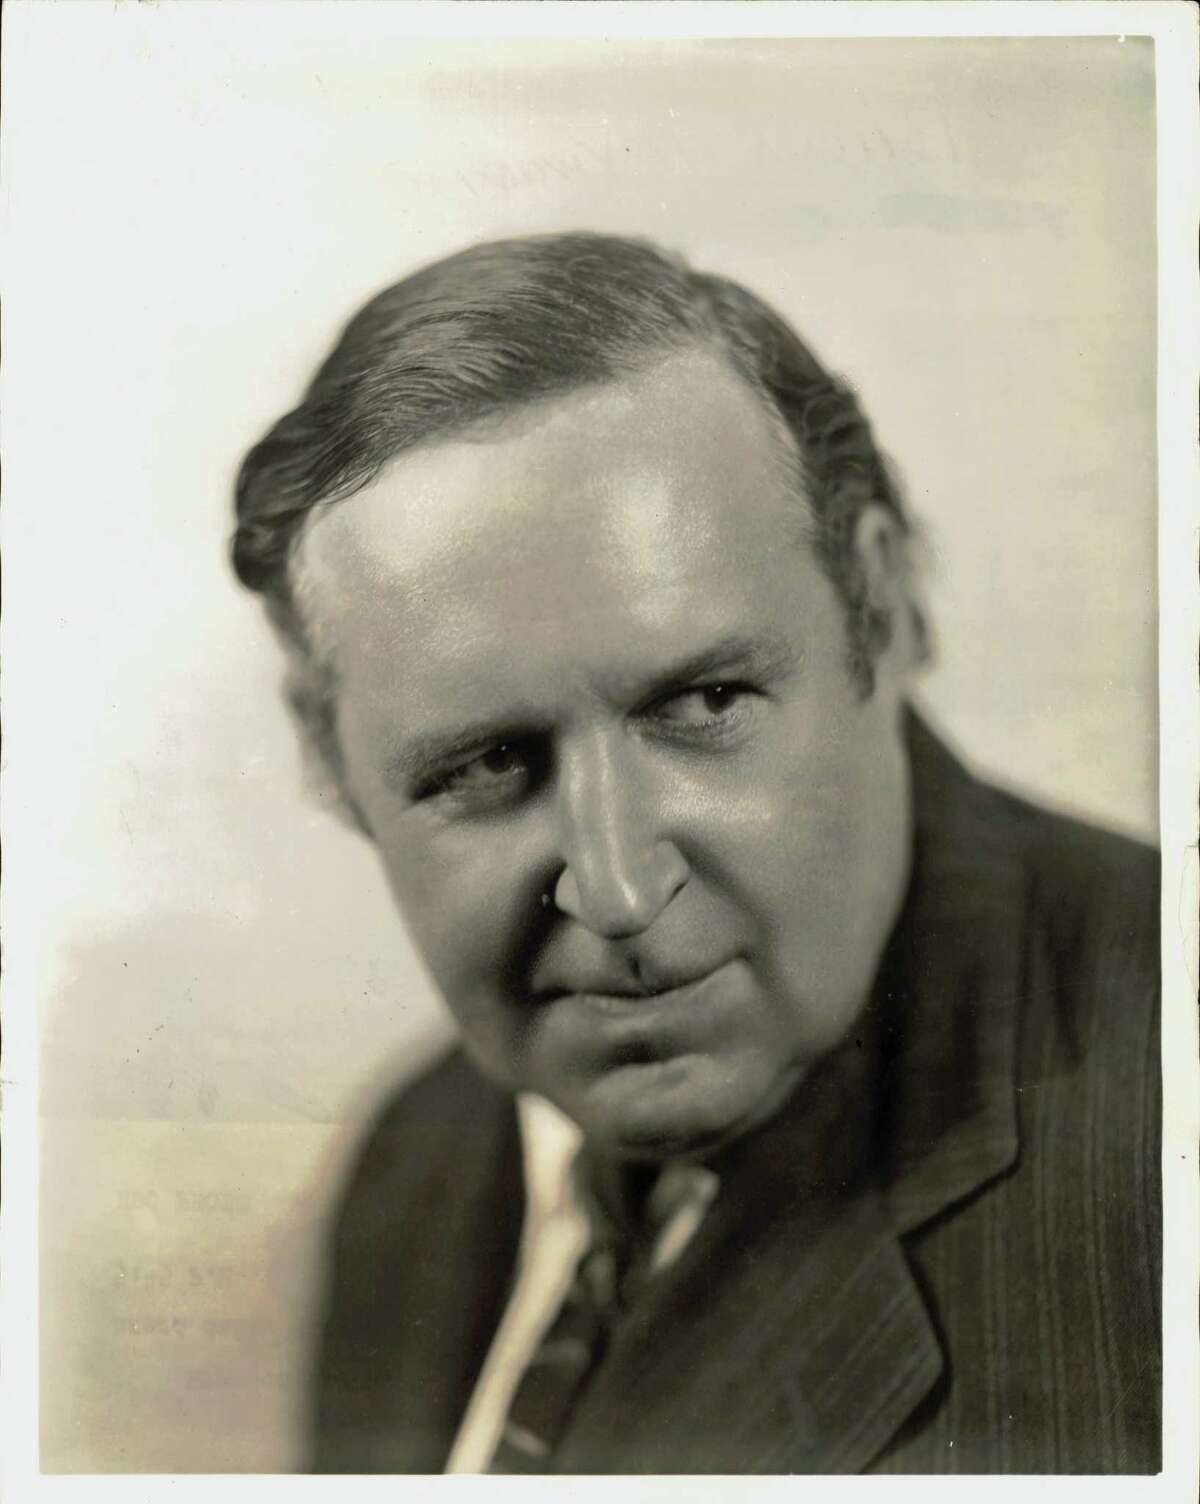 Heywood Broun, noted columnist, whose news comments are heard daily except Saturday and Sunday on the G.E. Circle at 5:45 P.M., E.D.S.T. over a National Broadcasting Company - WEAF network.